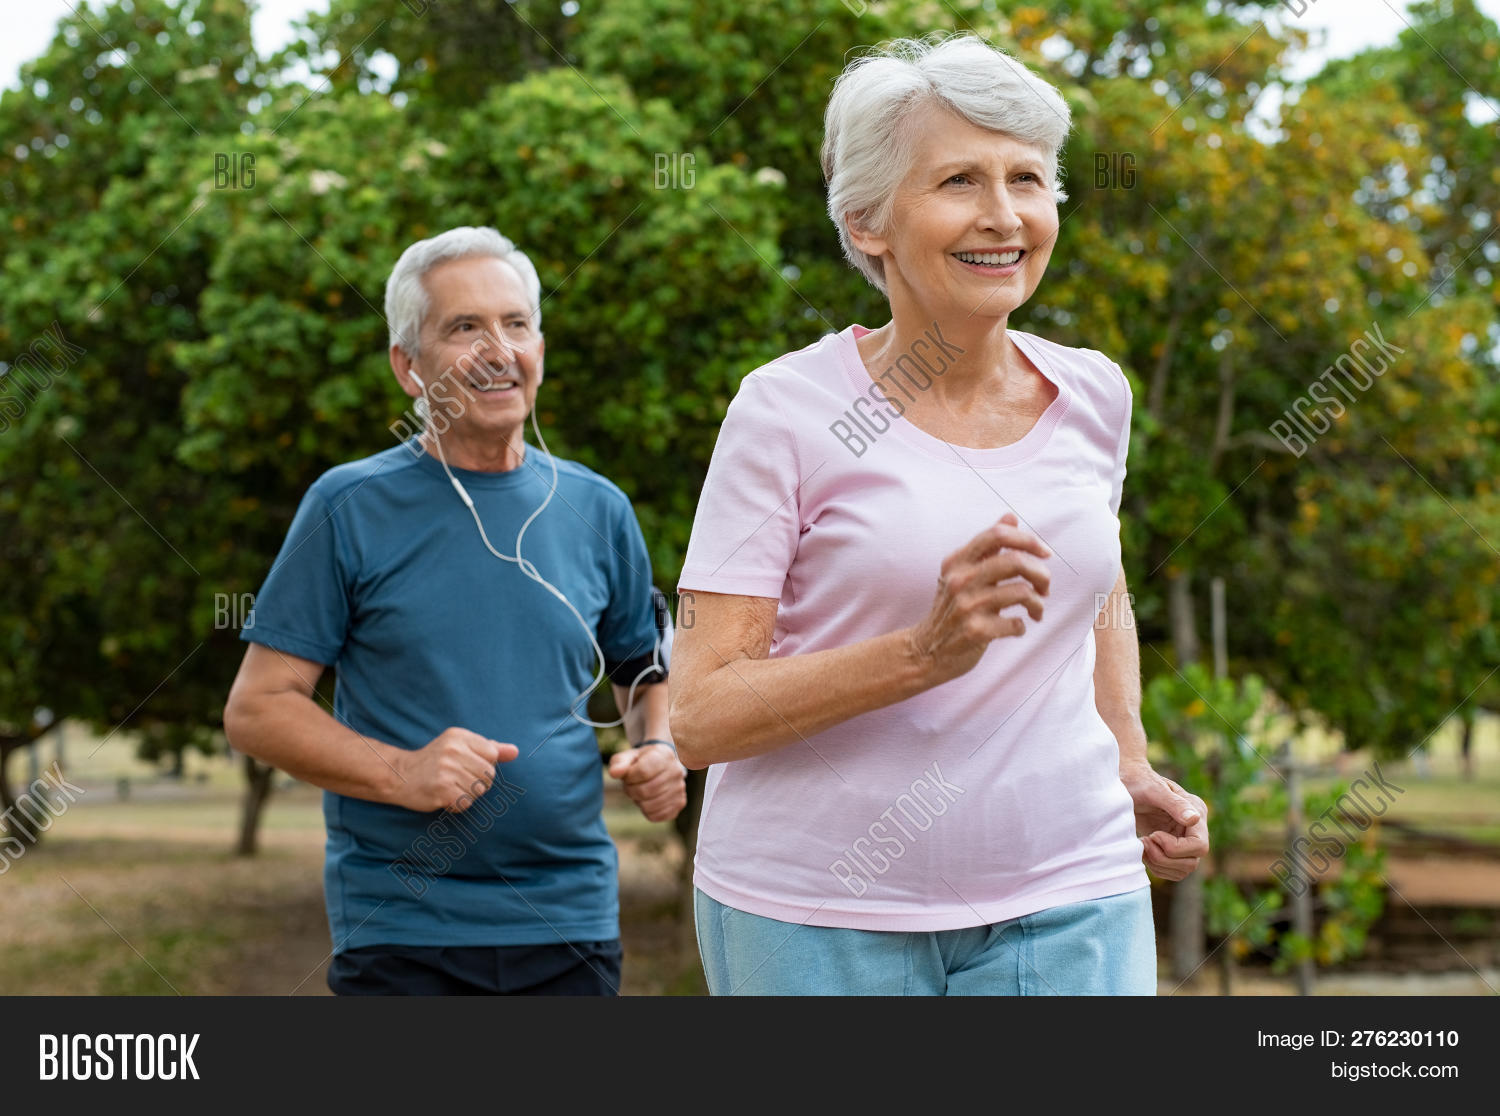 70s,80s,active,activity,aged,aged couple,aged man,aged woman,couple running,elderly,elderly couple,elderly woman,exercise,fit,fitness,happy,health,healthcare,healthy,healthy lifestyle,healthy living,jog,jogger,lifestyle,man,old couple jogging,old man,old people exercising,outdoor,outdoors,park,pensioner,people,retired,retirement,routine,run,runner,senior,senior man,senior woman,seniors,seniors running,smile,sport,together,toothy smile,training,white hair